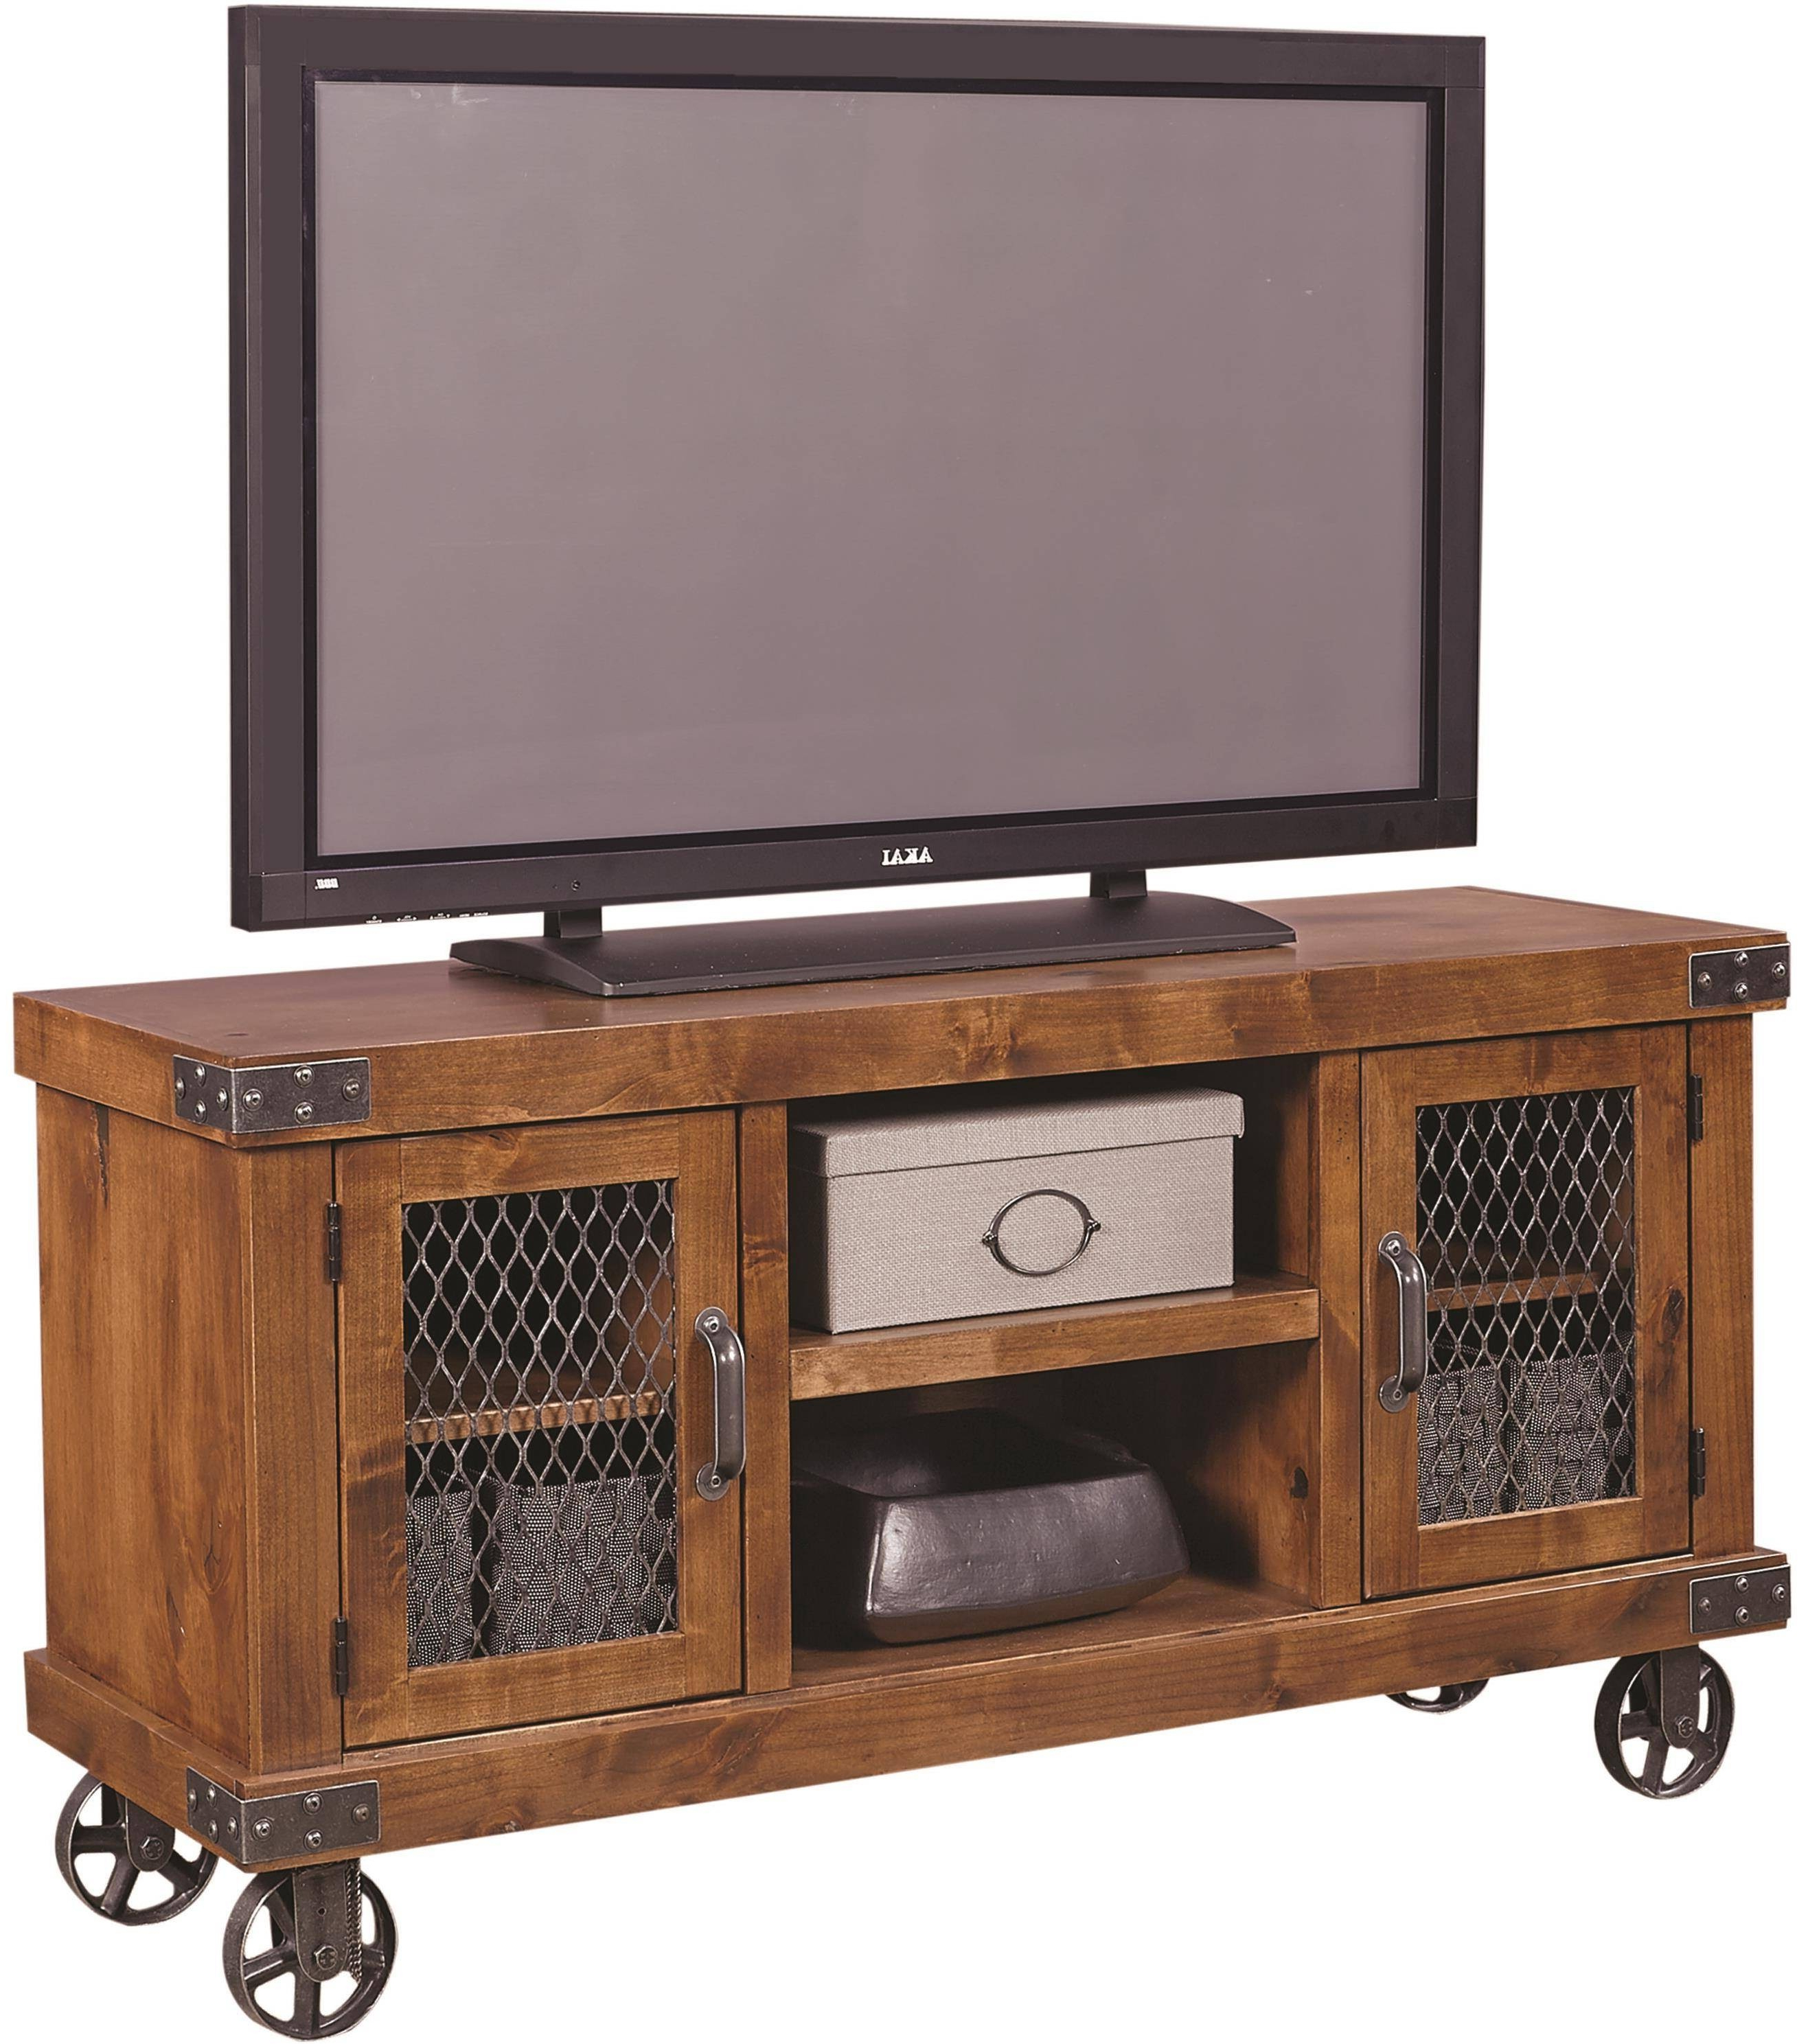 2018 Best Of Industrial Corner Tv Stands Buy Canada Stand Dollar Intended For Latest Industrial Corner Tv Stands (View 1 of 20)